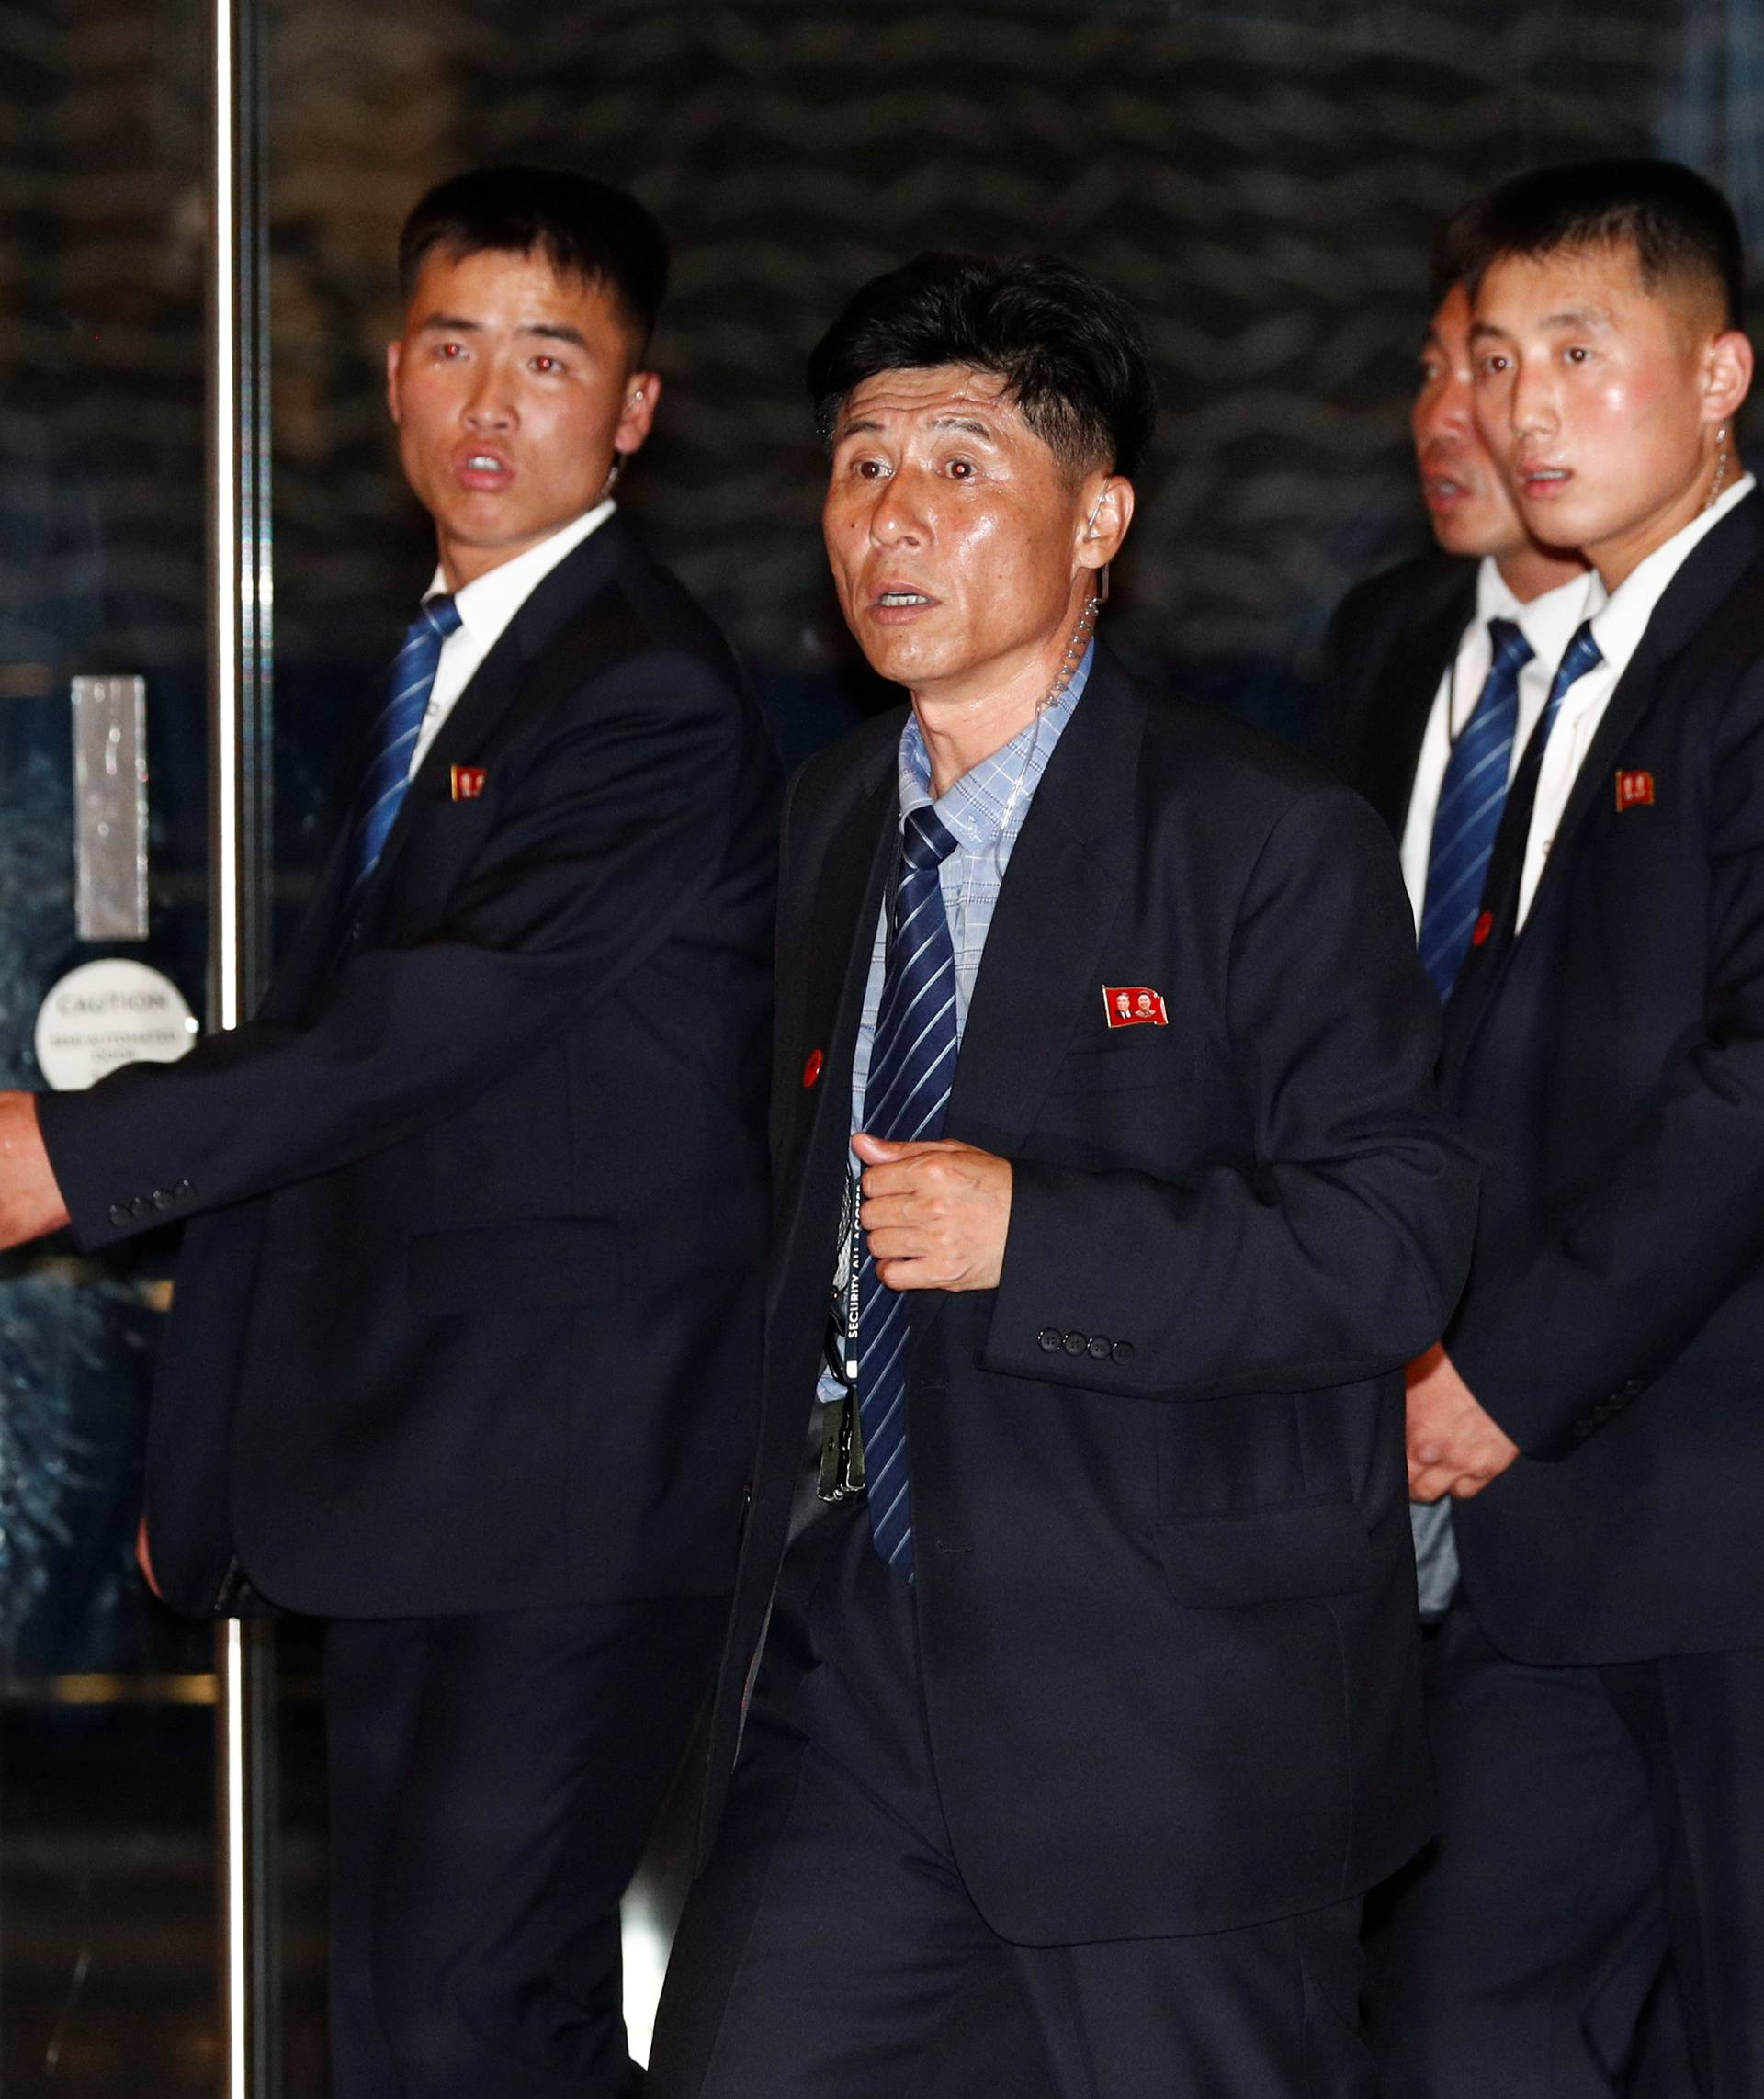 Bodyguards of North Korea's leader Kim Jong Un arrive at The Marina Bay Sands hotel in Singapore